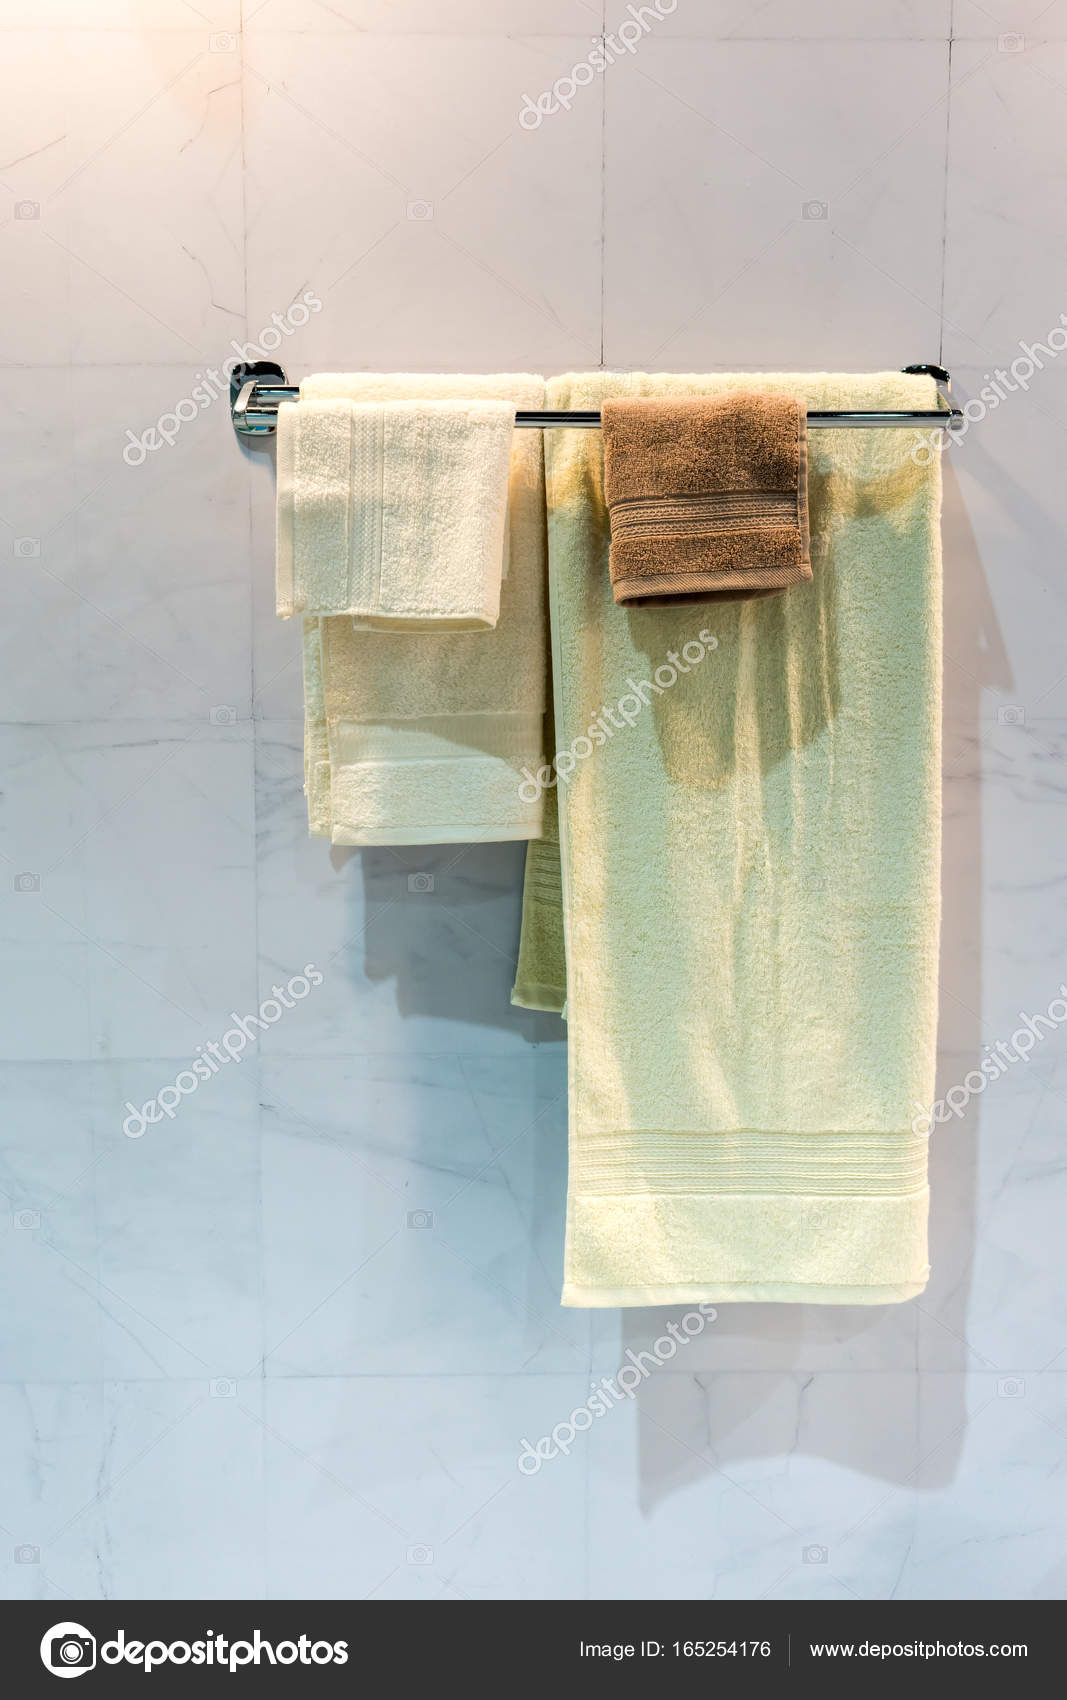 Folded hanging towel Bathroom Towels New Yellow And Brown Folded Towels Hanging On Metal Rail Under Stock Photo Depositphotos New Yellow And Brown Folded Towels Hanging On Metal Rail Under